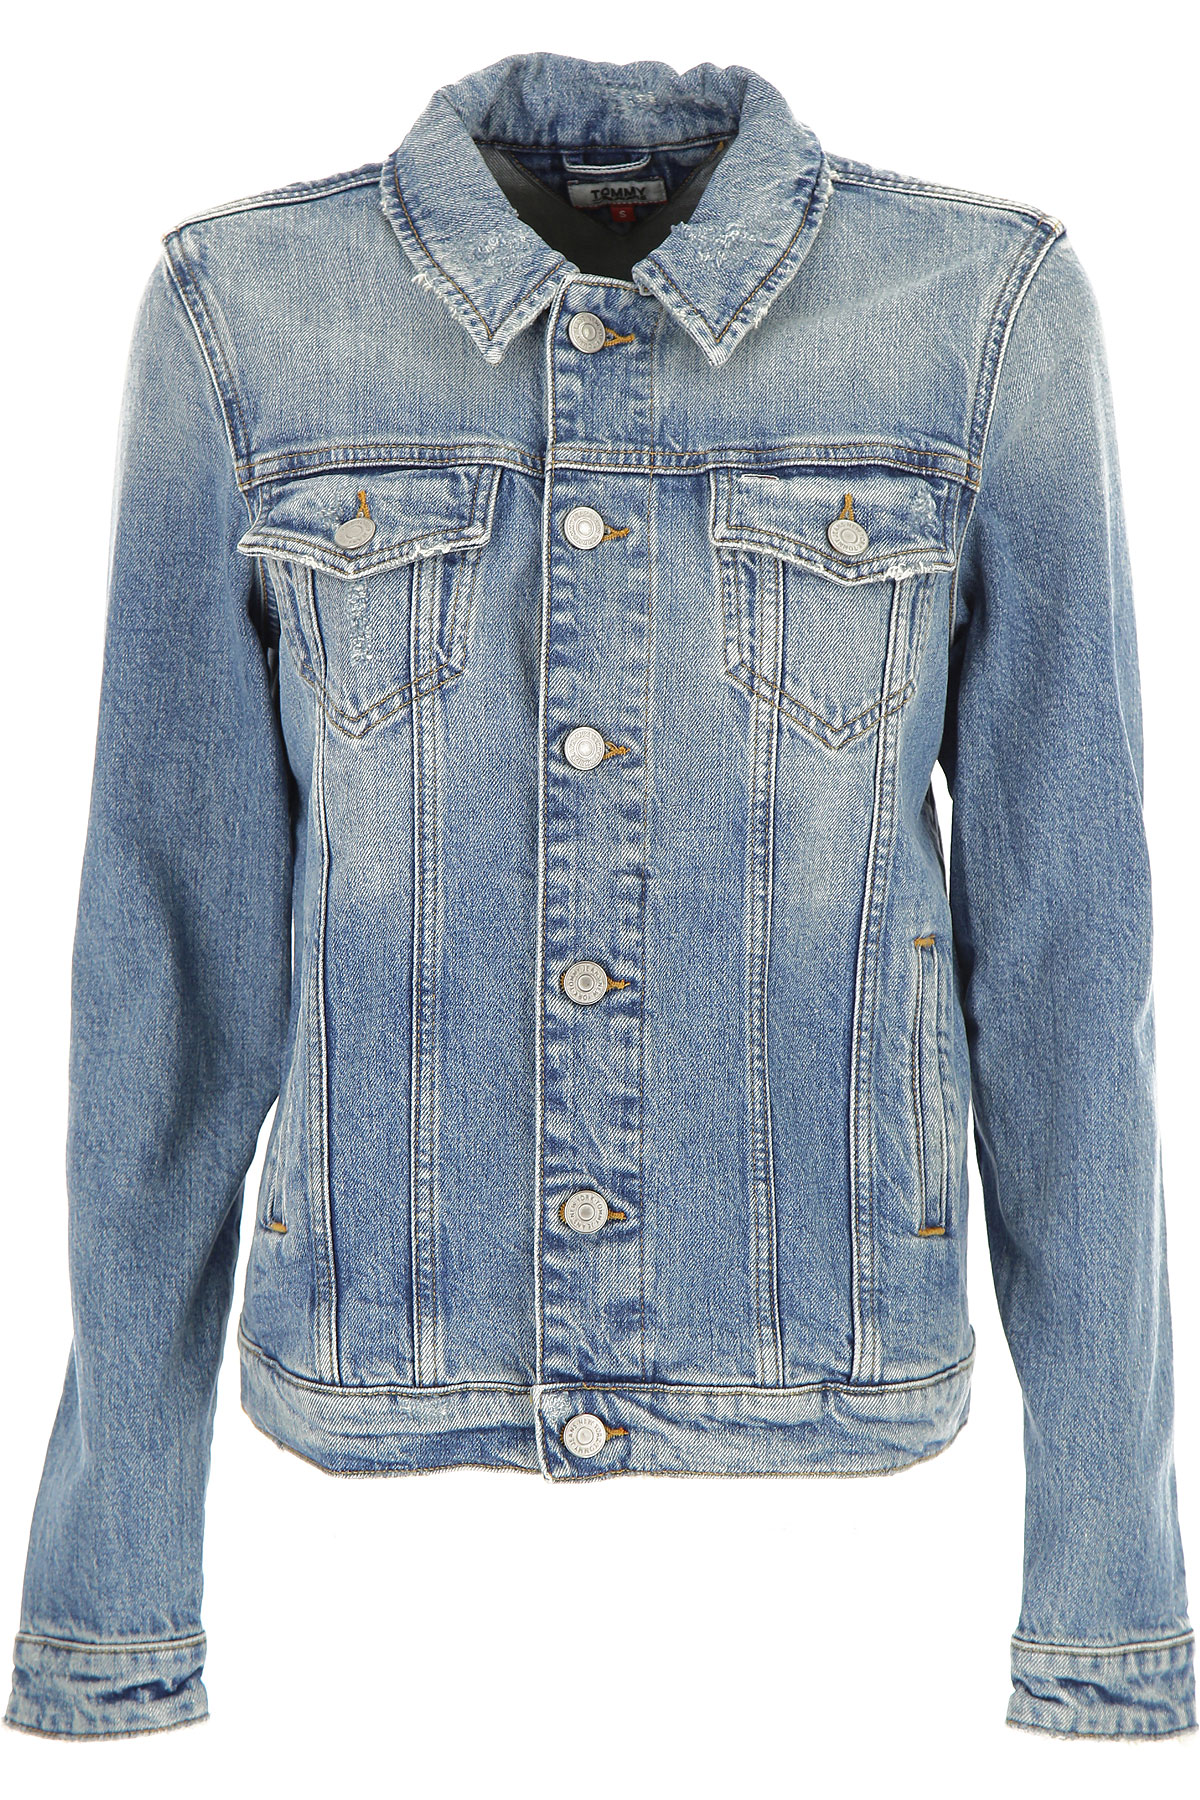 Tommy Hilfiger Jacket for Women On Sale, Blue Denim, Cotton, 2019, 4 6